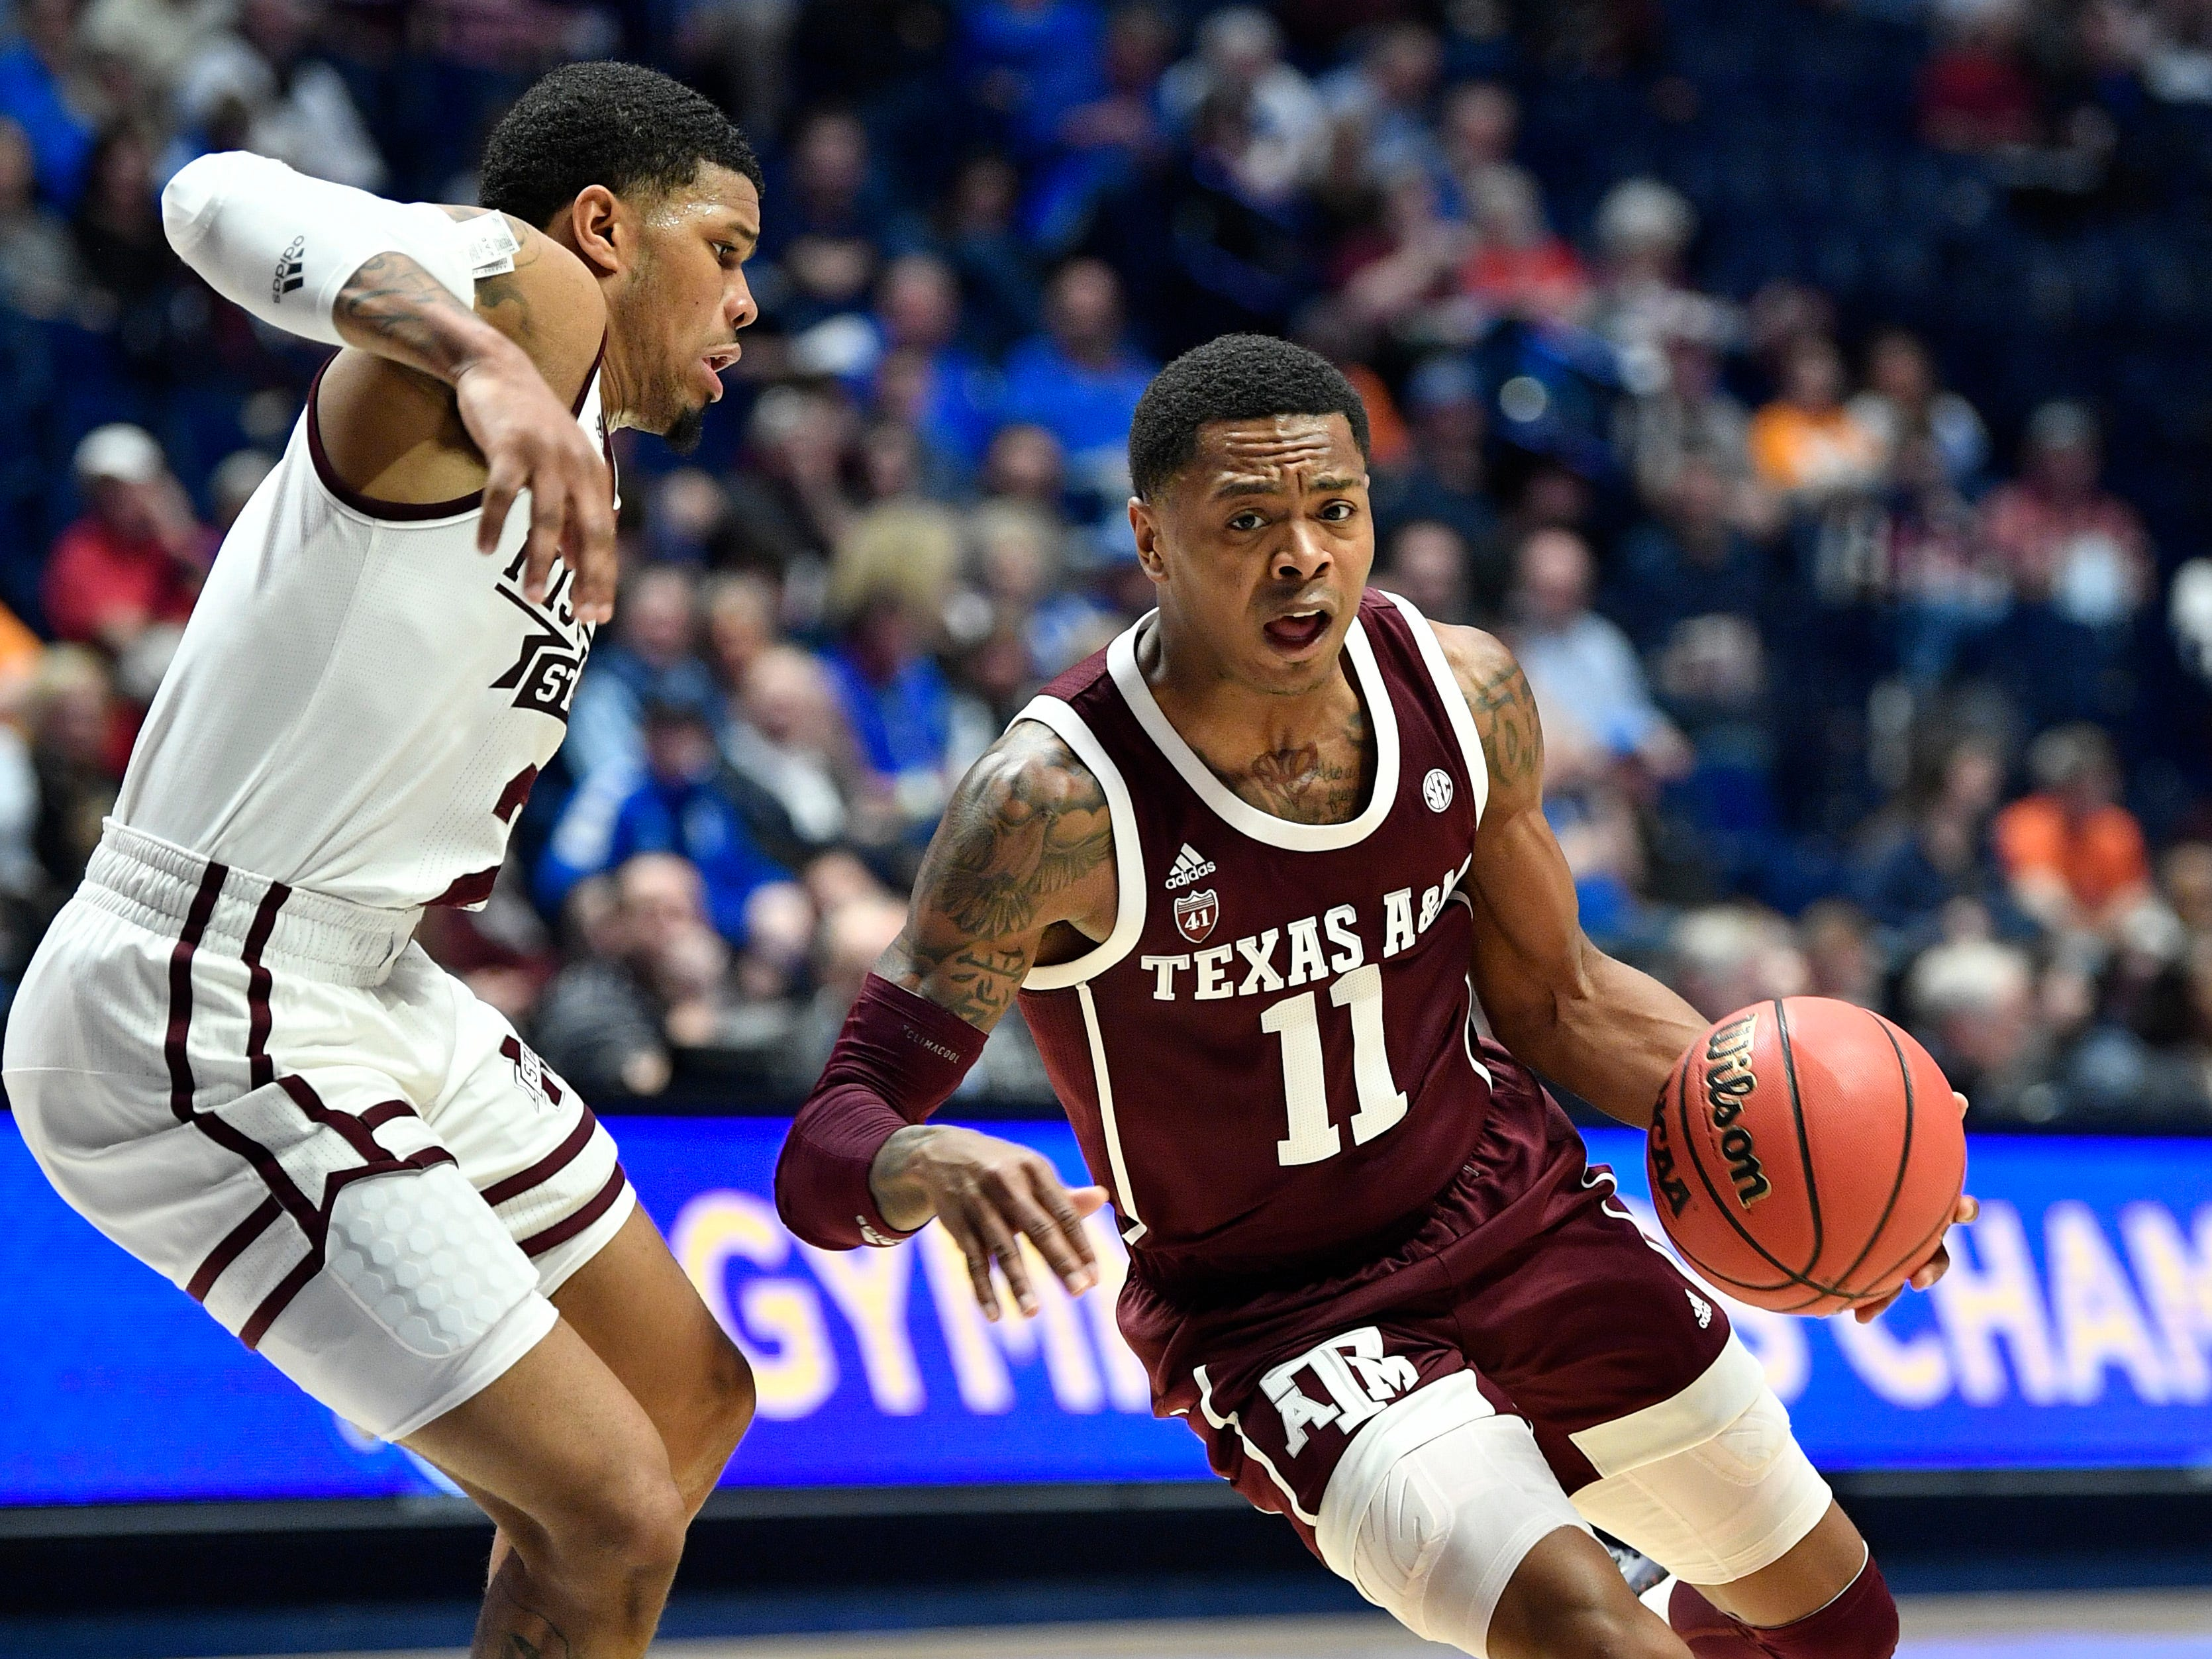 Texas A&M guard Wendell Mitchell (11) moves the ball defended by Mississippi State guard Lamar Peters (2) during the first half of the SEC Men's Basketball Tournament game at Bridgestone Arena in Nashville, Tenn., Thursday, March 14, 2019.